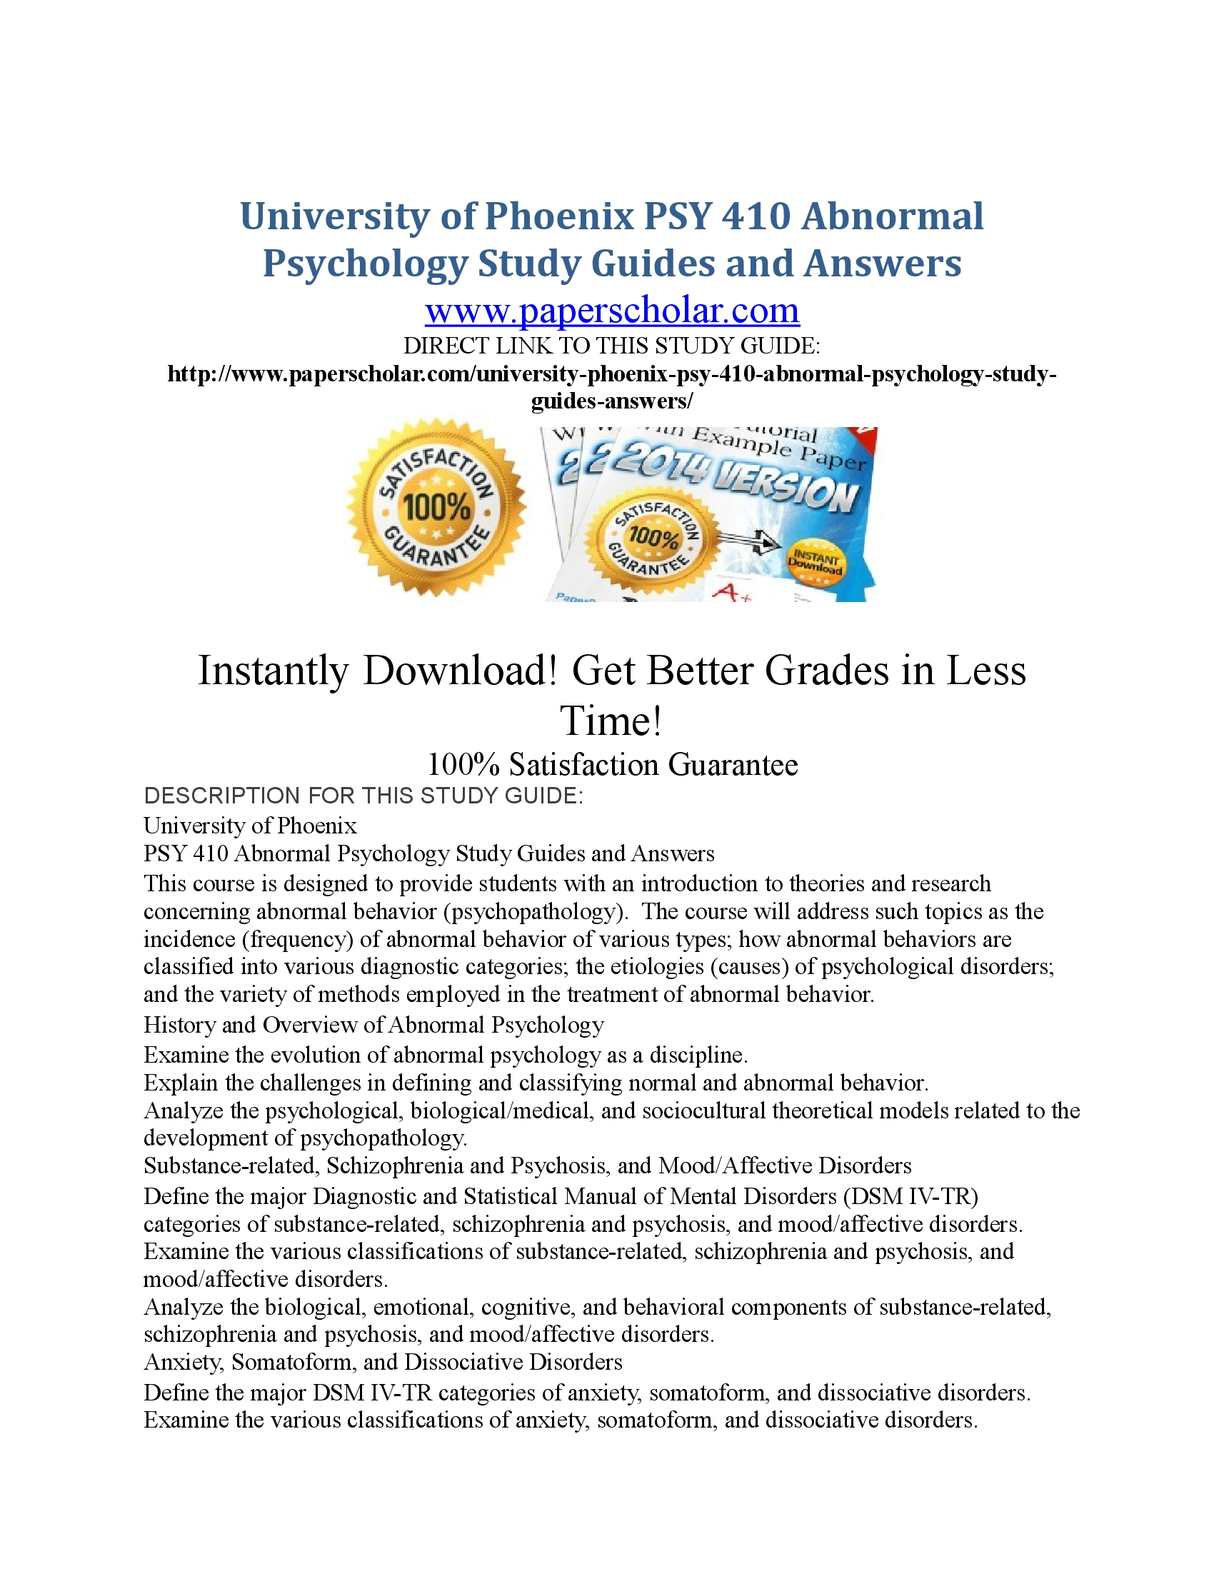 Calaméo - University of Phoenix PSY 410 Abnormal Psychology Study Guides  and Answers